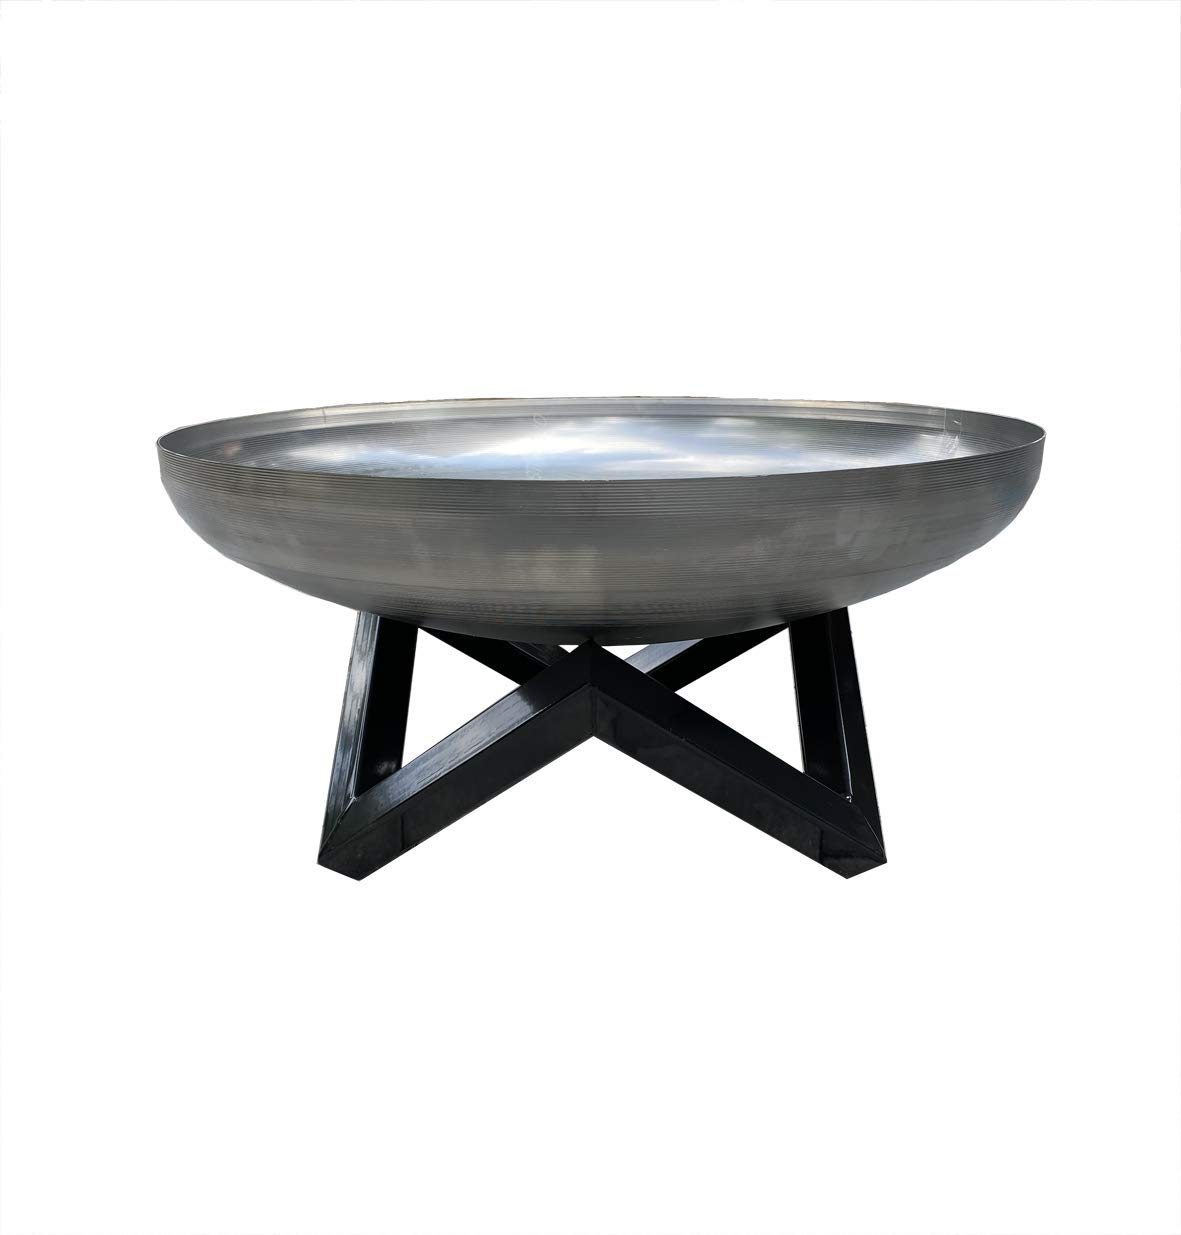 Cheshire On Site Wielding Fire Pit Stainless Steel 65cm Outdoor Garden Bowl Patio Heater BBQ Log Burner: Amazon.co.uk: Garden & Outdoors